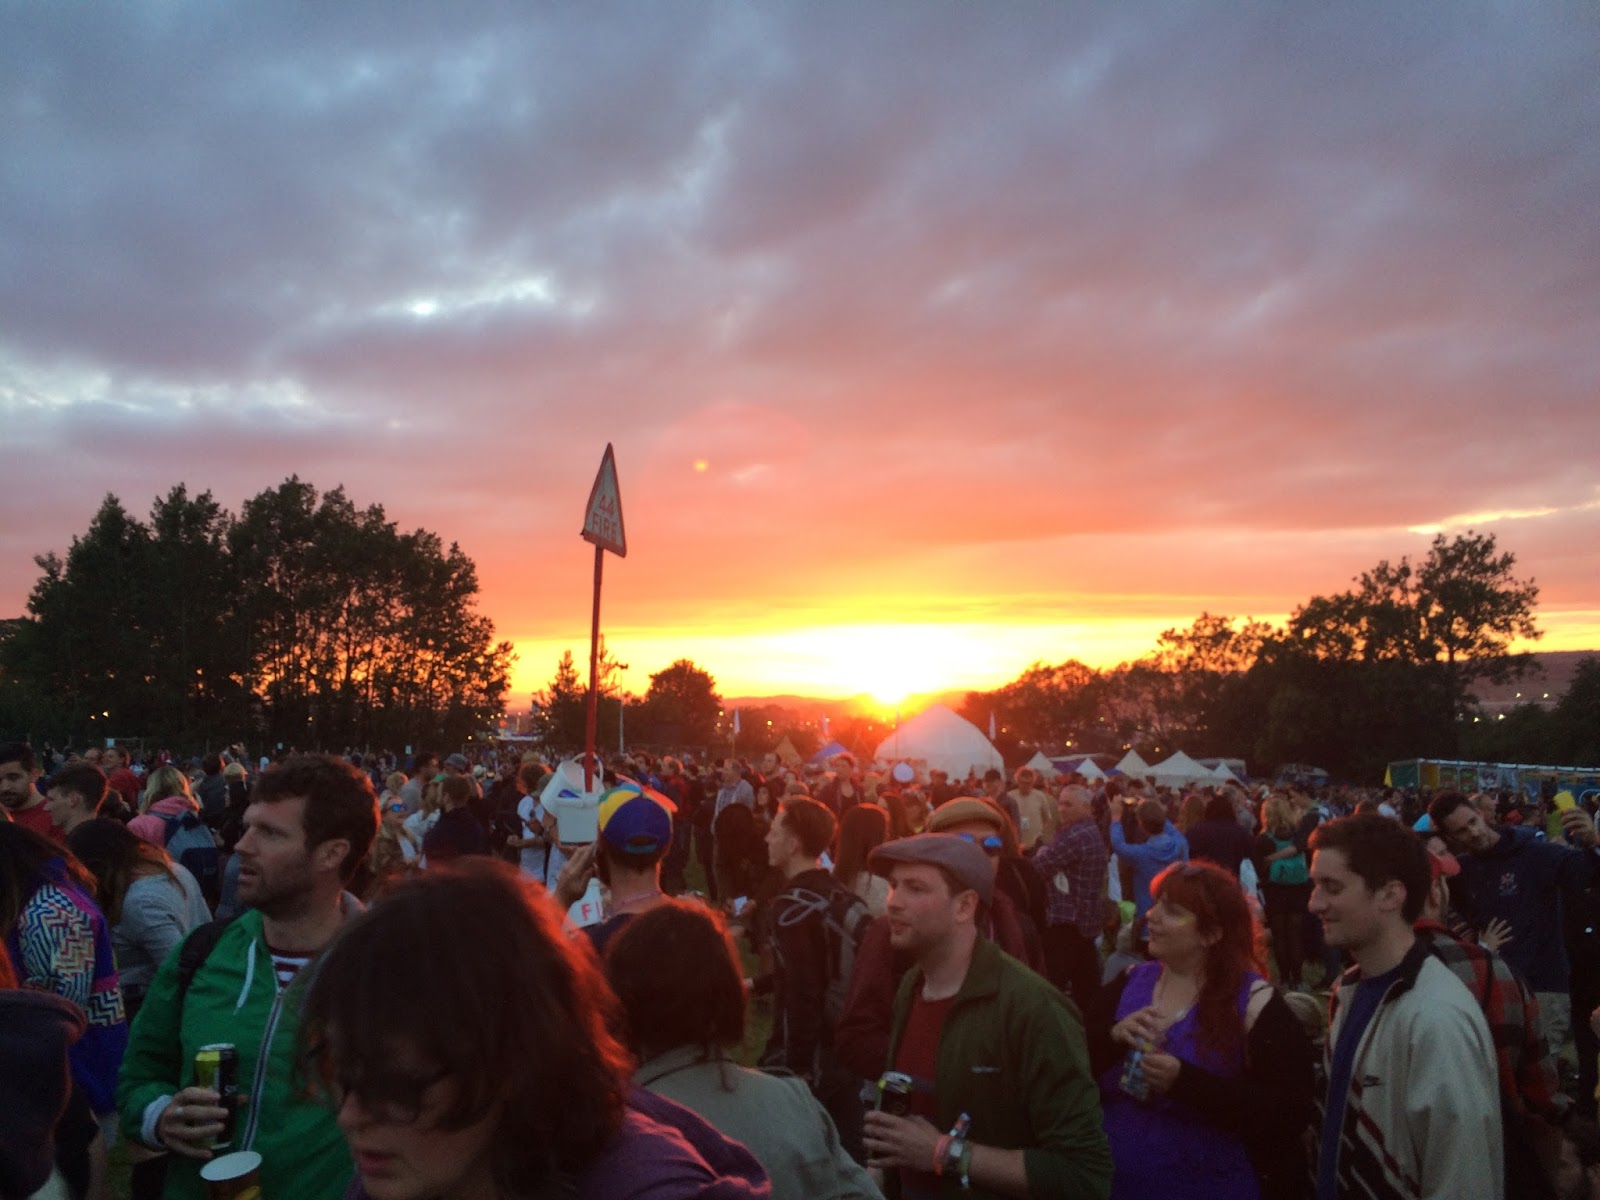 Glastonbury Festival first night at sunset